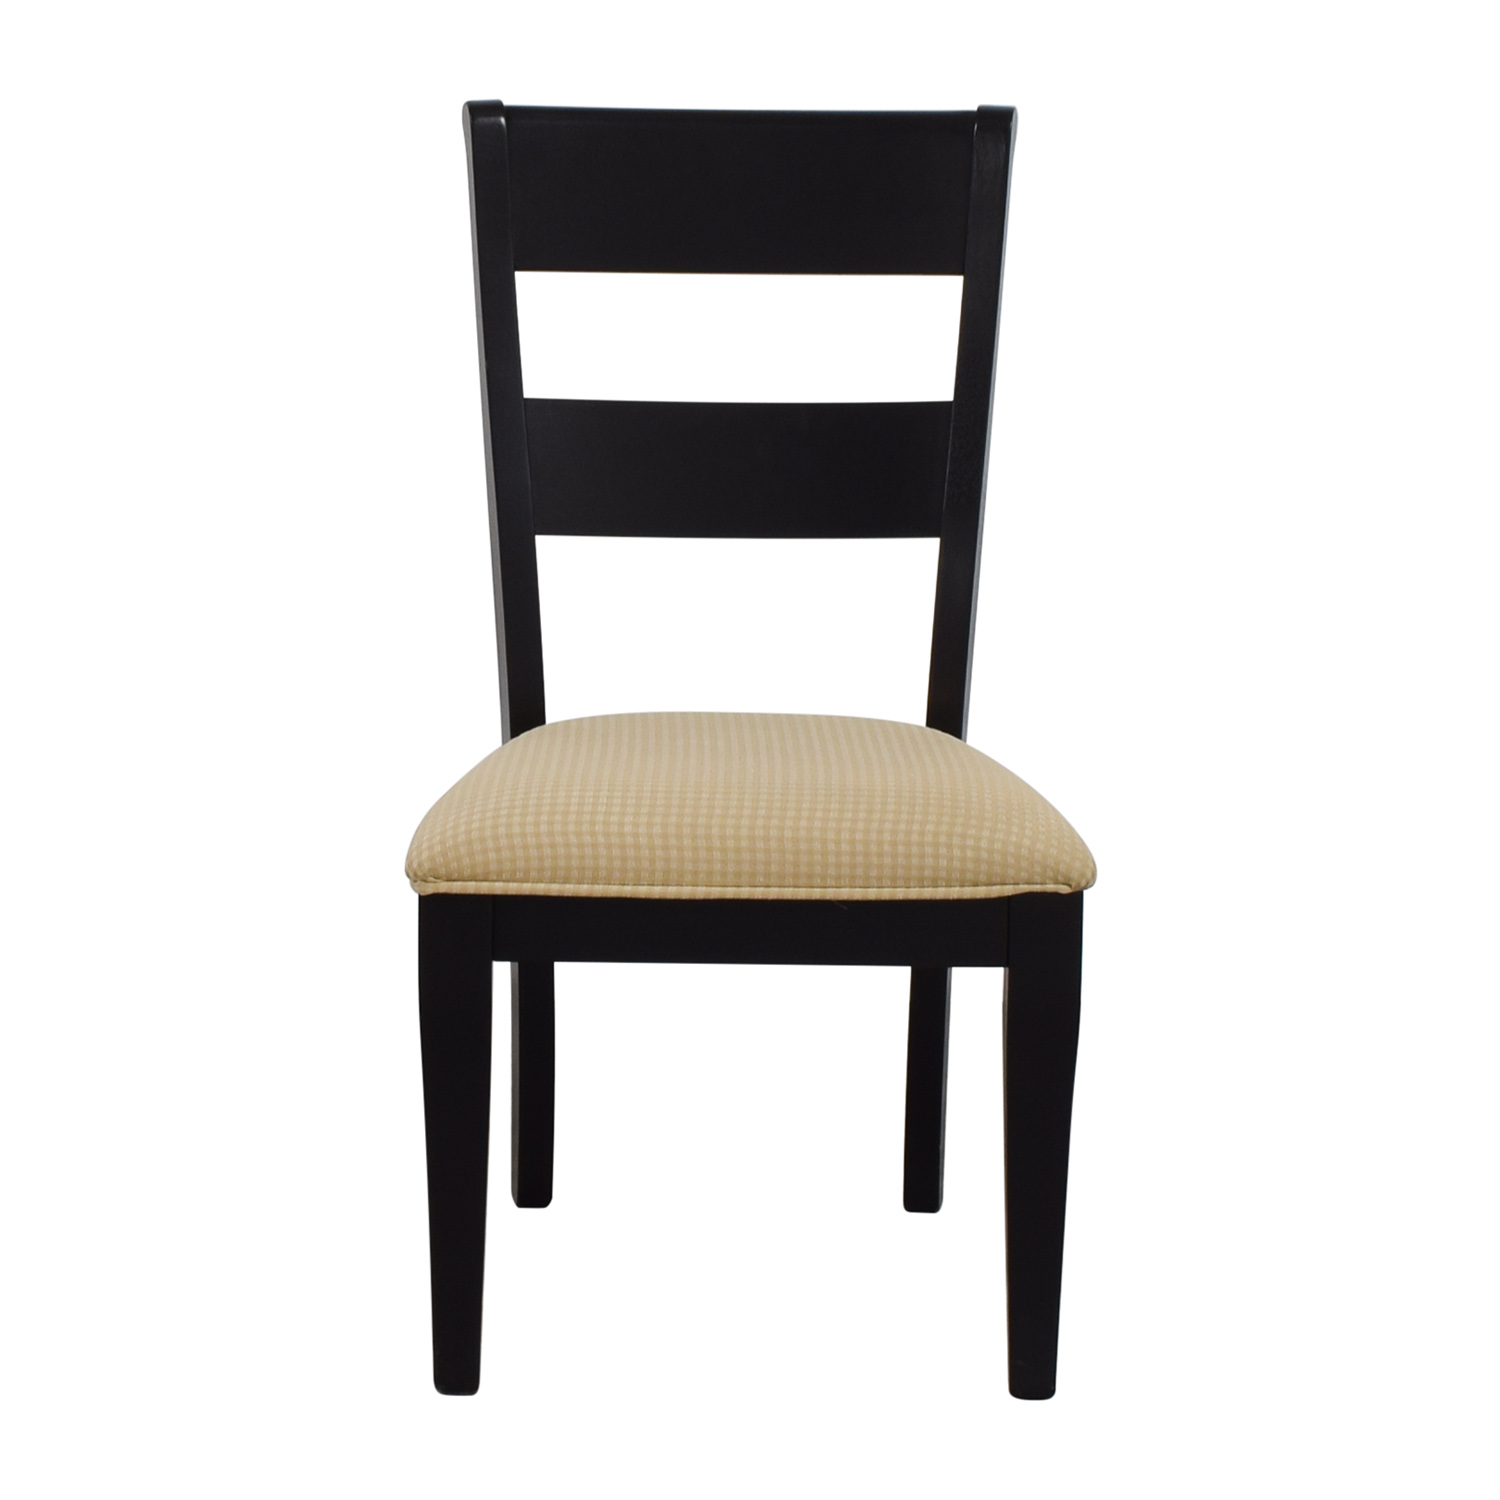 buy Raymour & Flanigan Black Chair with Beige Check Upholstery Raymour & Flanigan